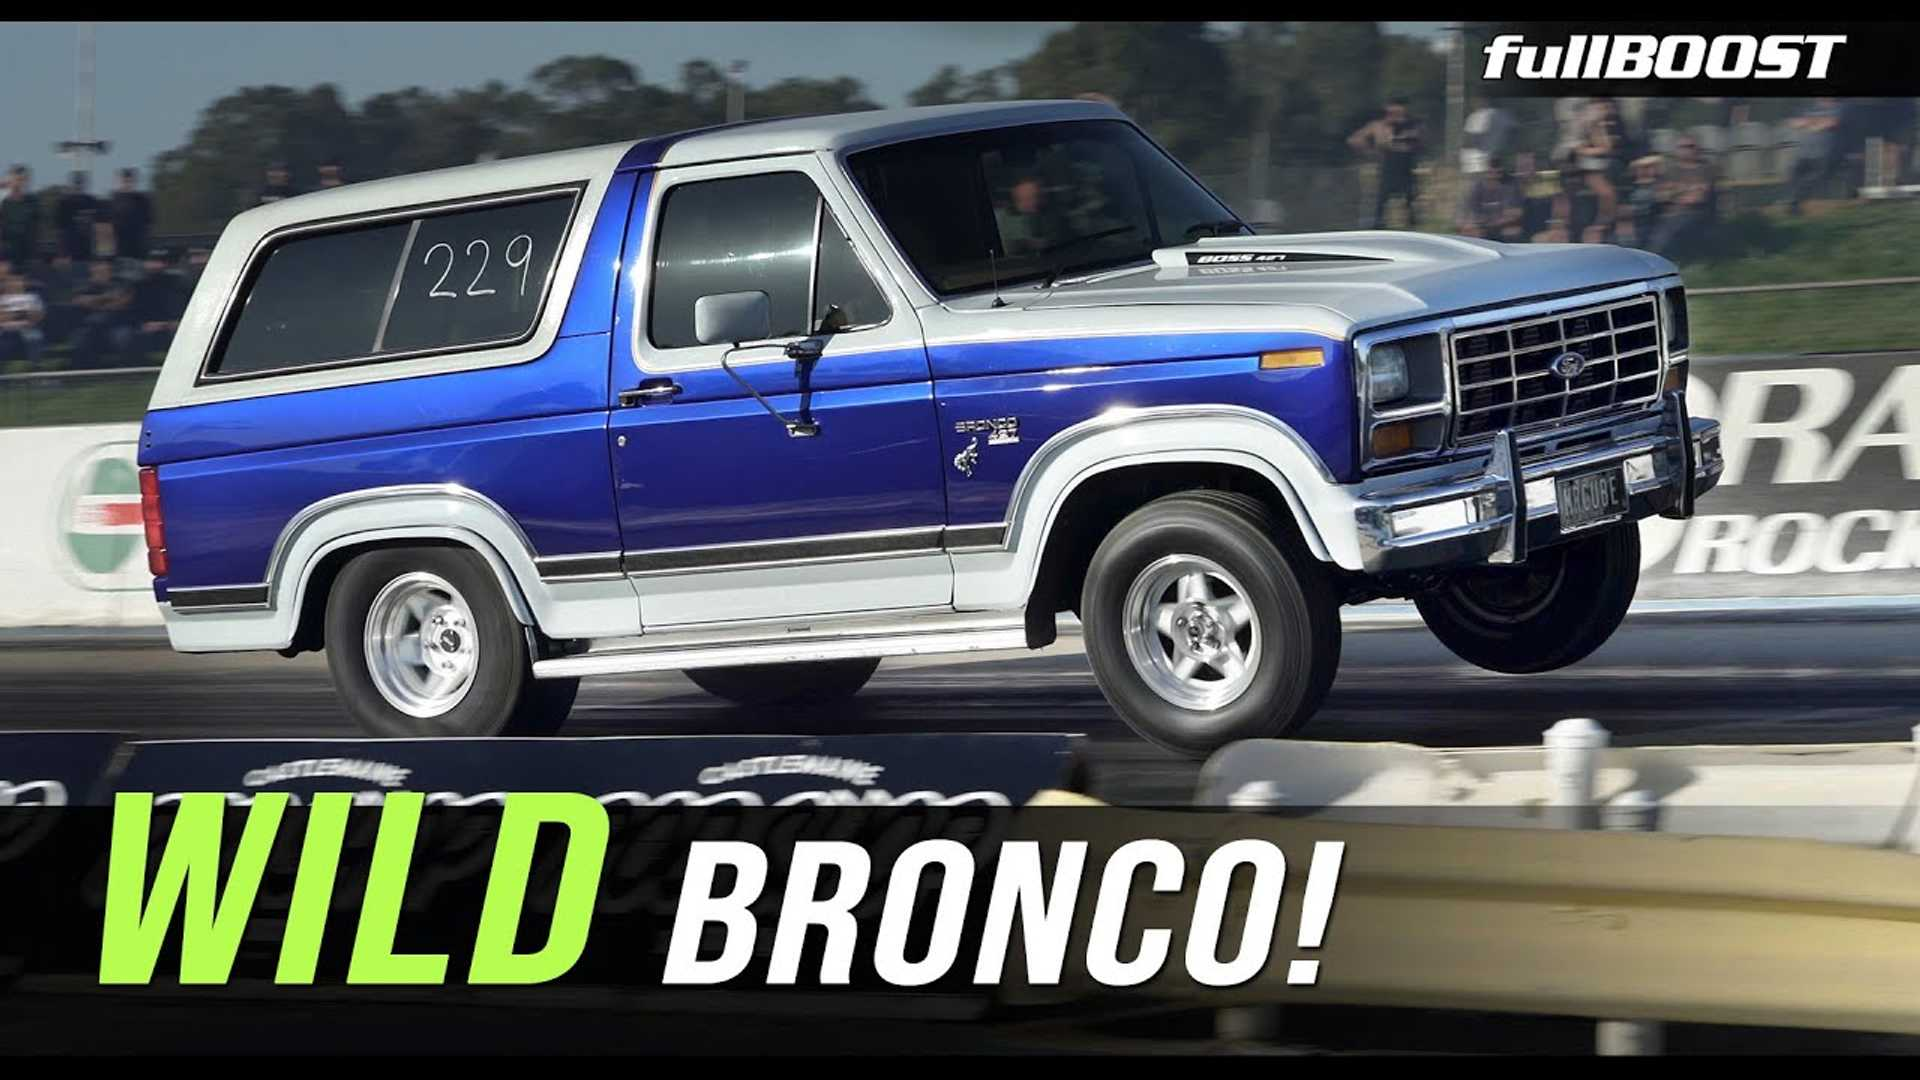 Bonkers Ford Bronco Sleeper Does 9-Second Quarter Mile